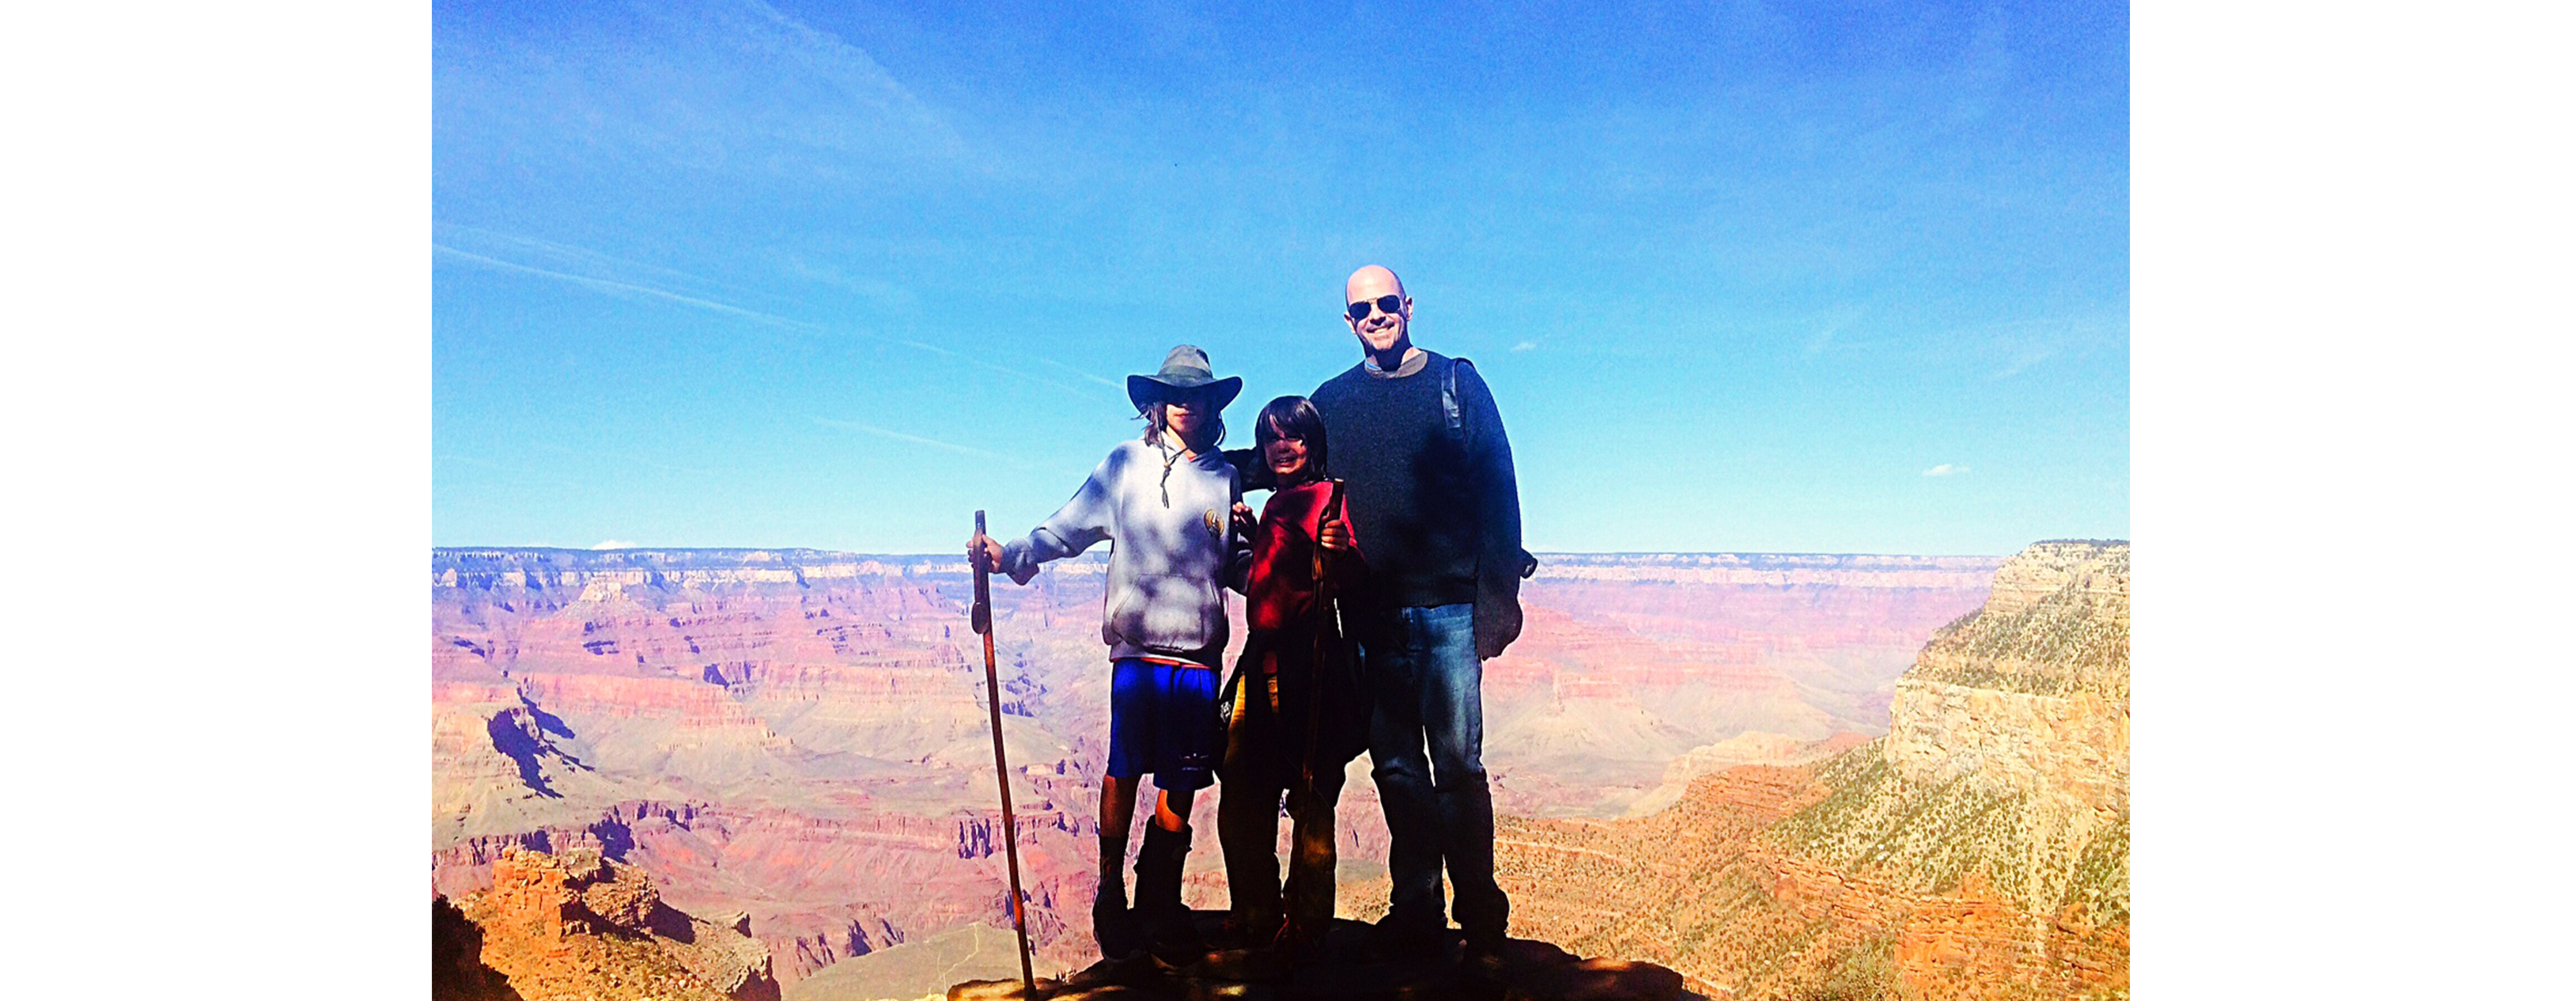 A group of 3 people are standing at the rim of a majestic canyon on a beautiful sunny day